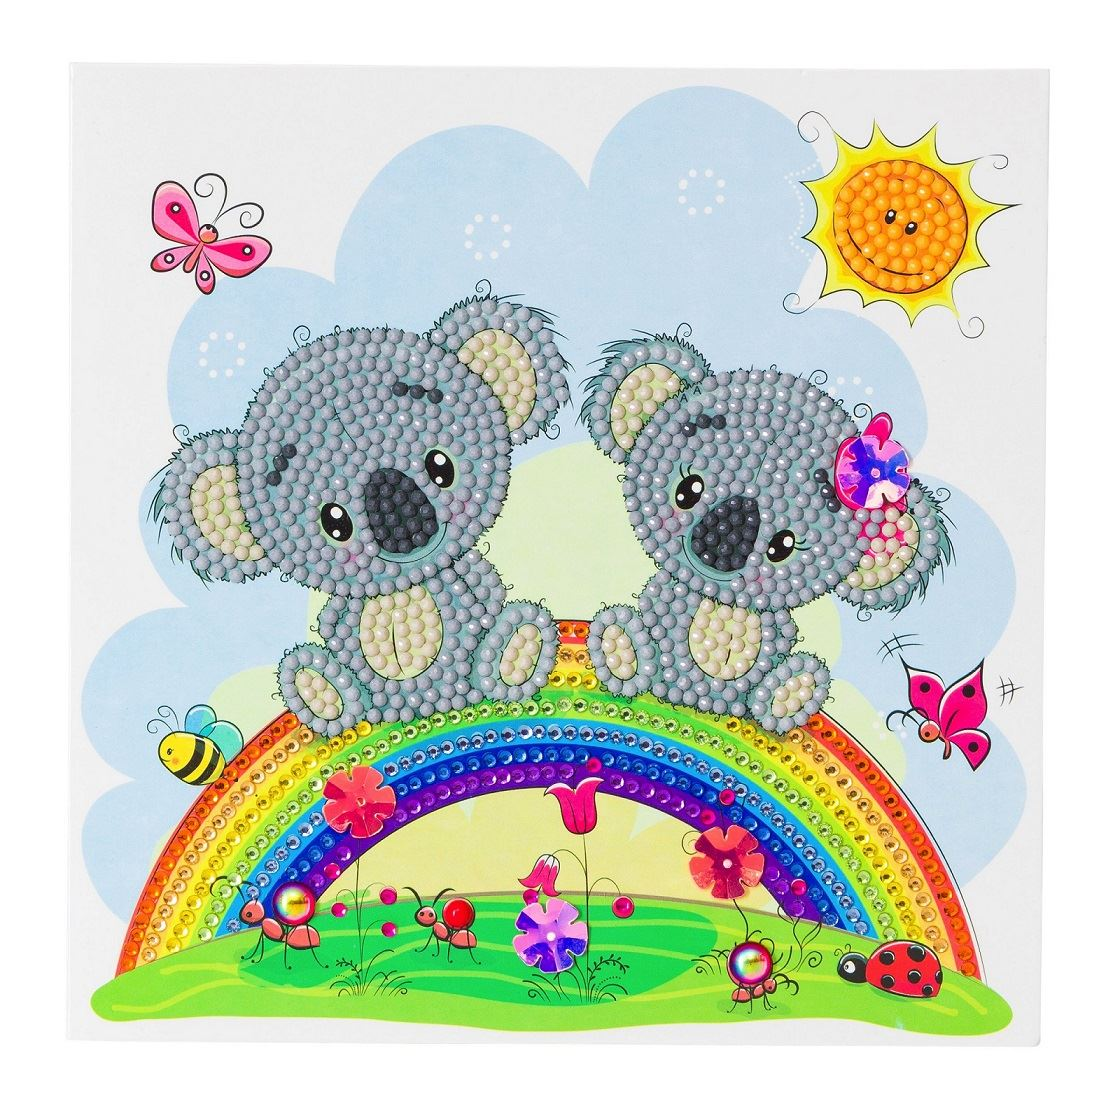 CCK-A47 Koala Rainbow Crystal Art Kit